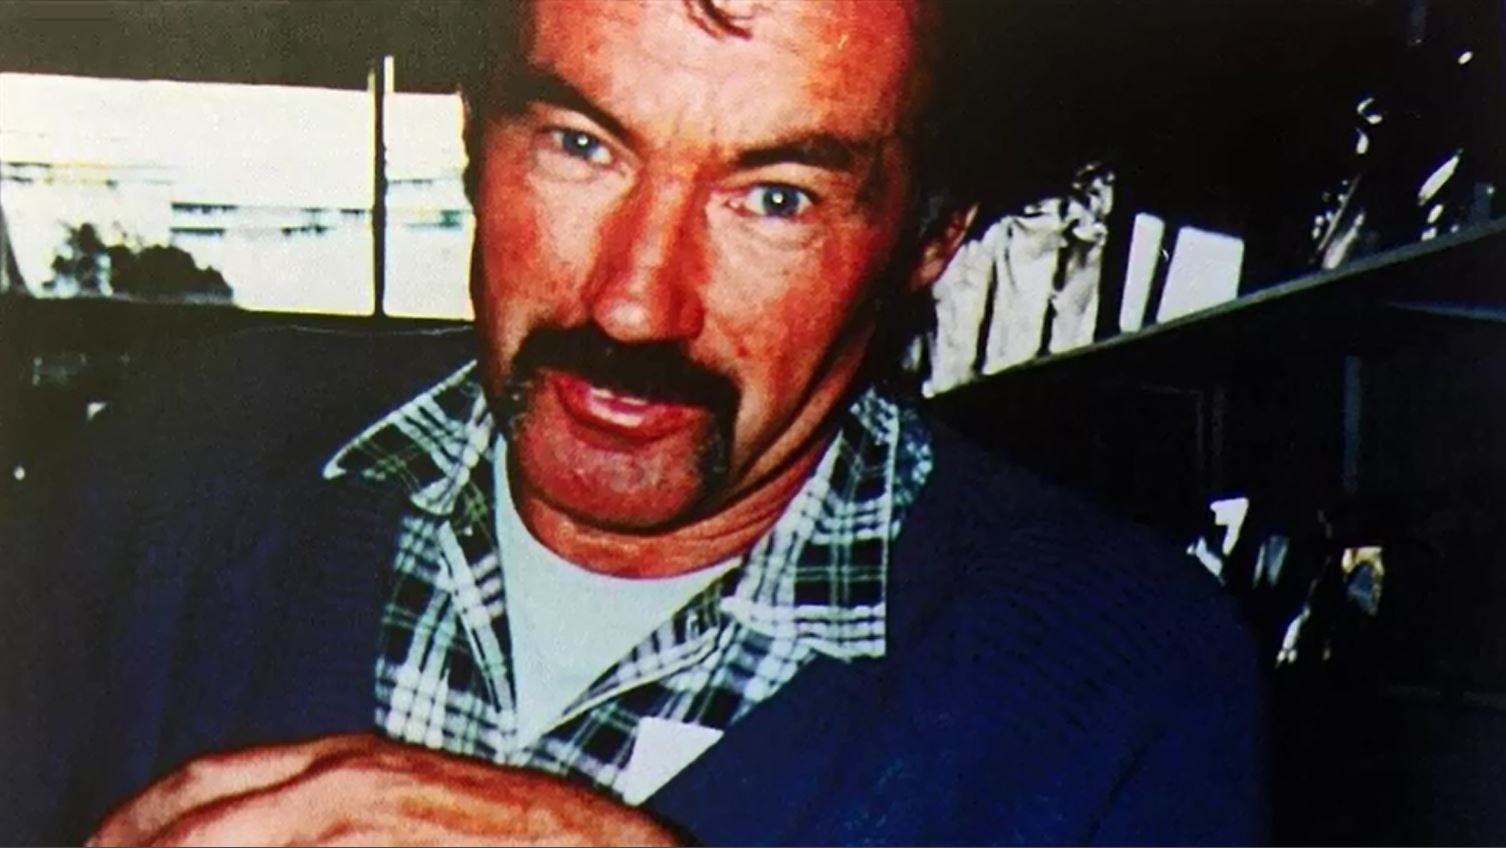 Ivan Milat's condition worsens in hospital